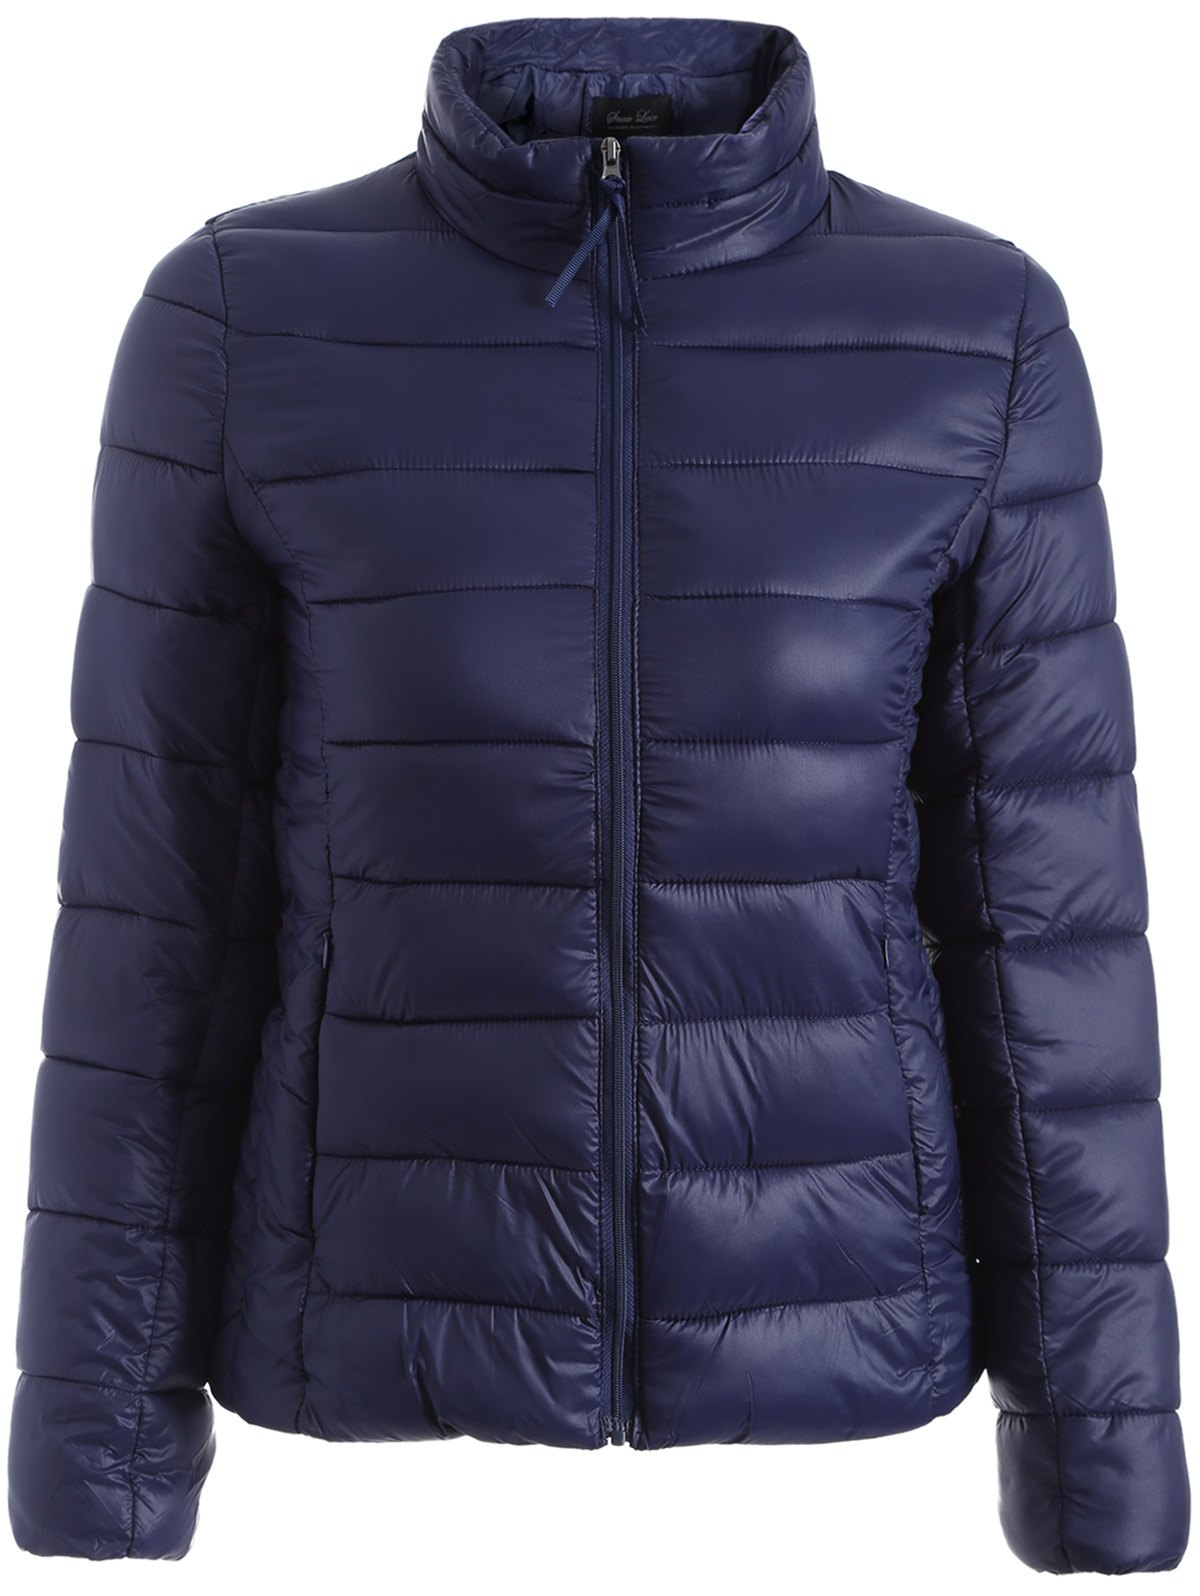 Zip Up Slim Quilted Jacket - PURPLISH BLUE 3XL